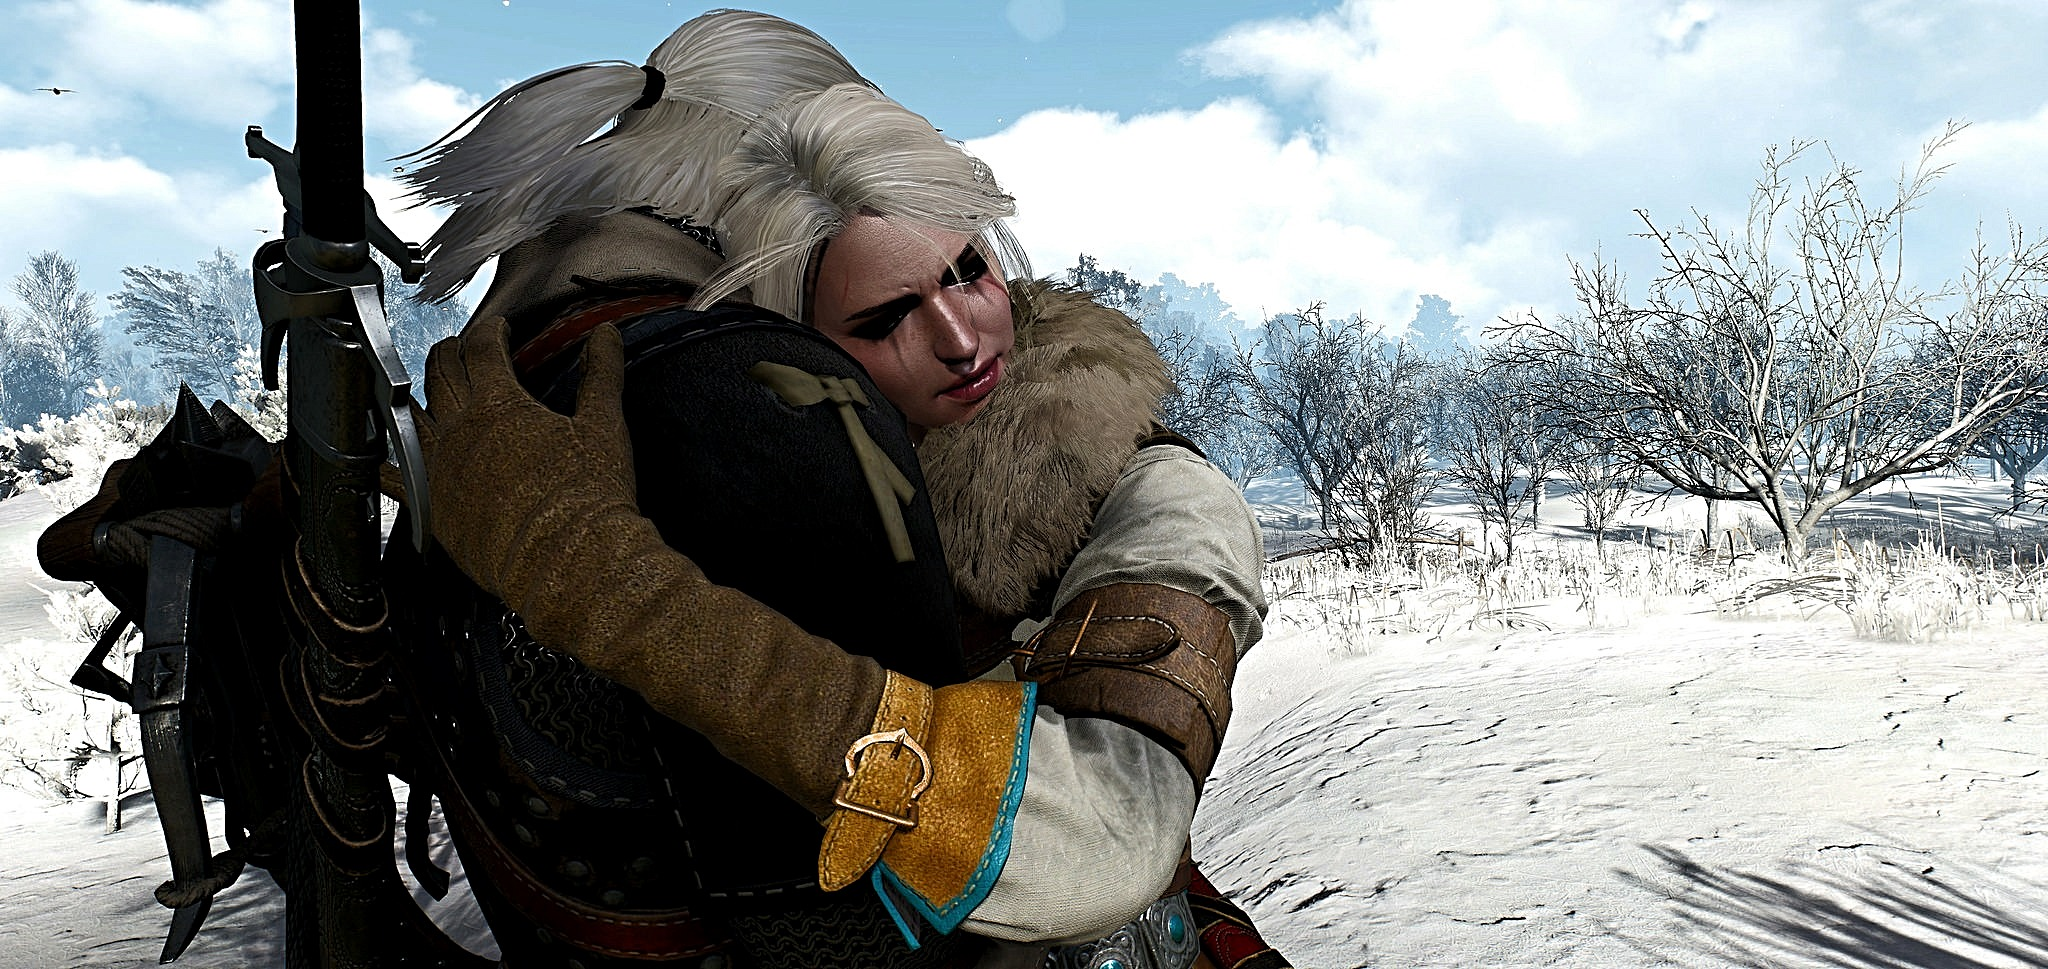 33644772TFGH23d (3).jpg - Witcher 3: Wild Hunt, the